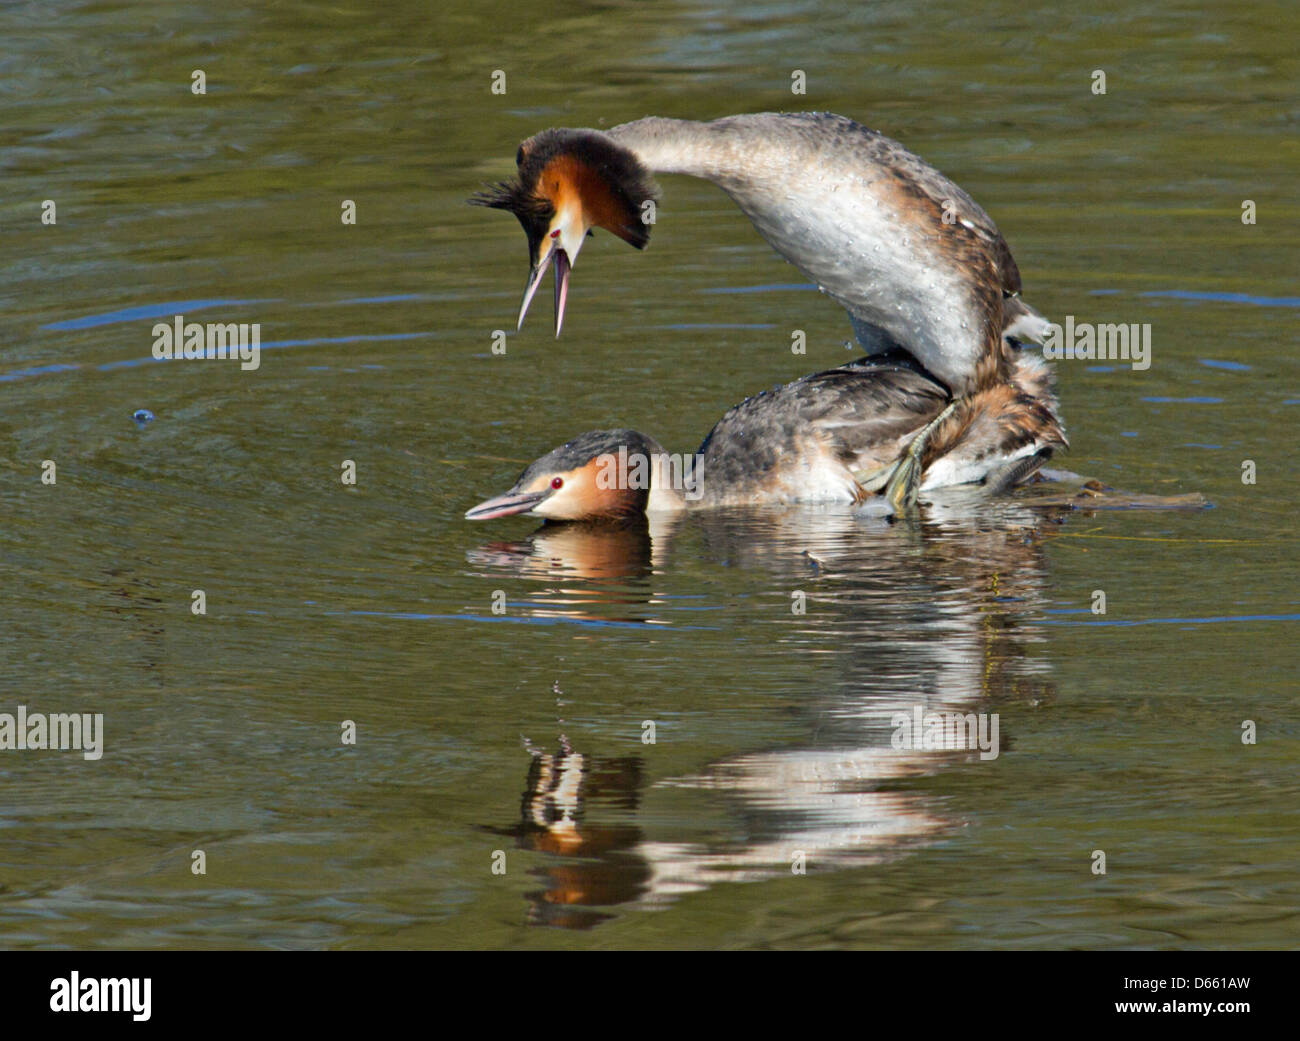 great crested grebes mating - Stock Image